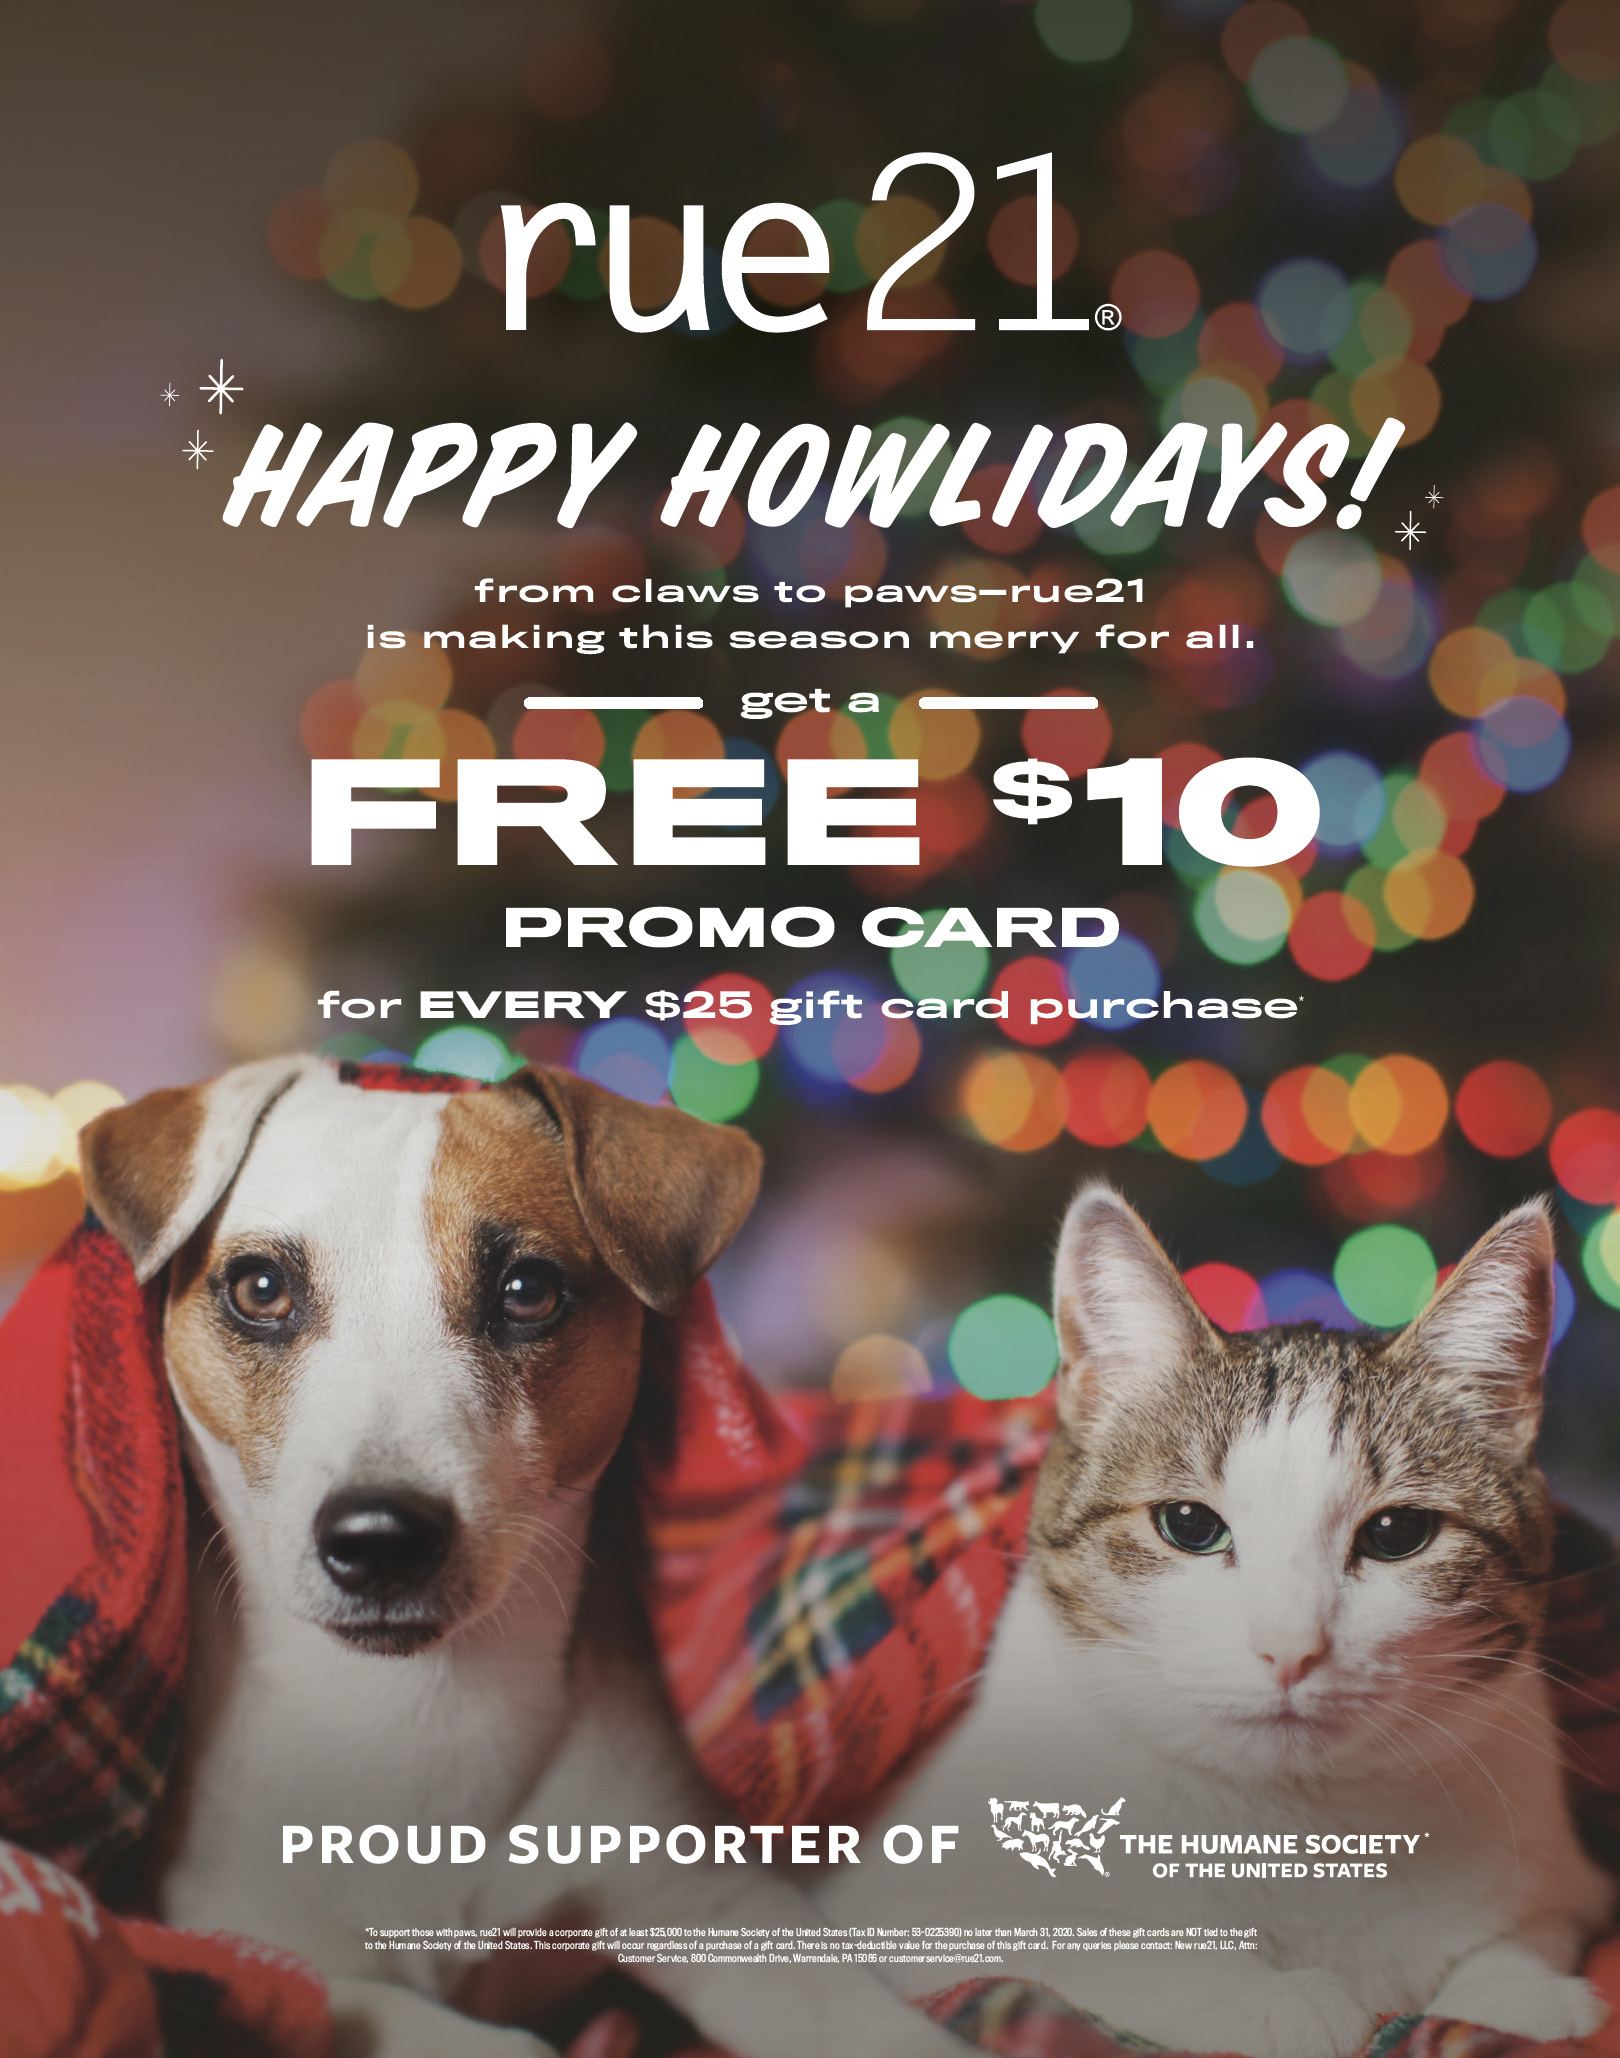 Happy Howlidays! from rue21